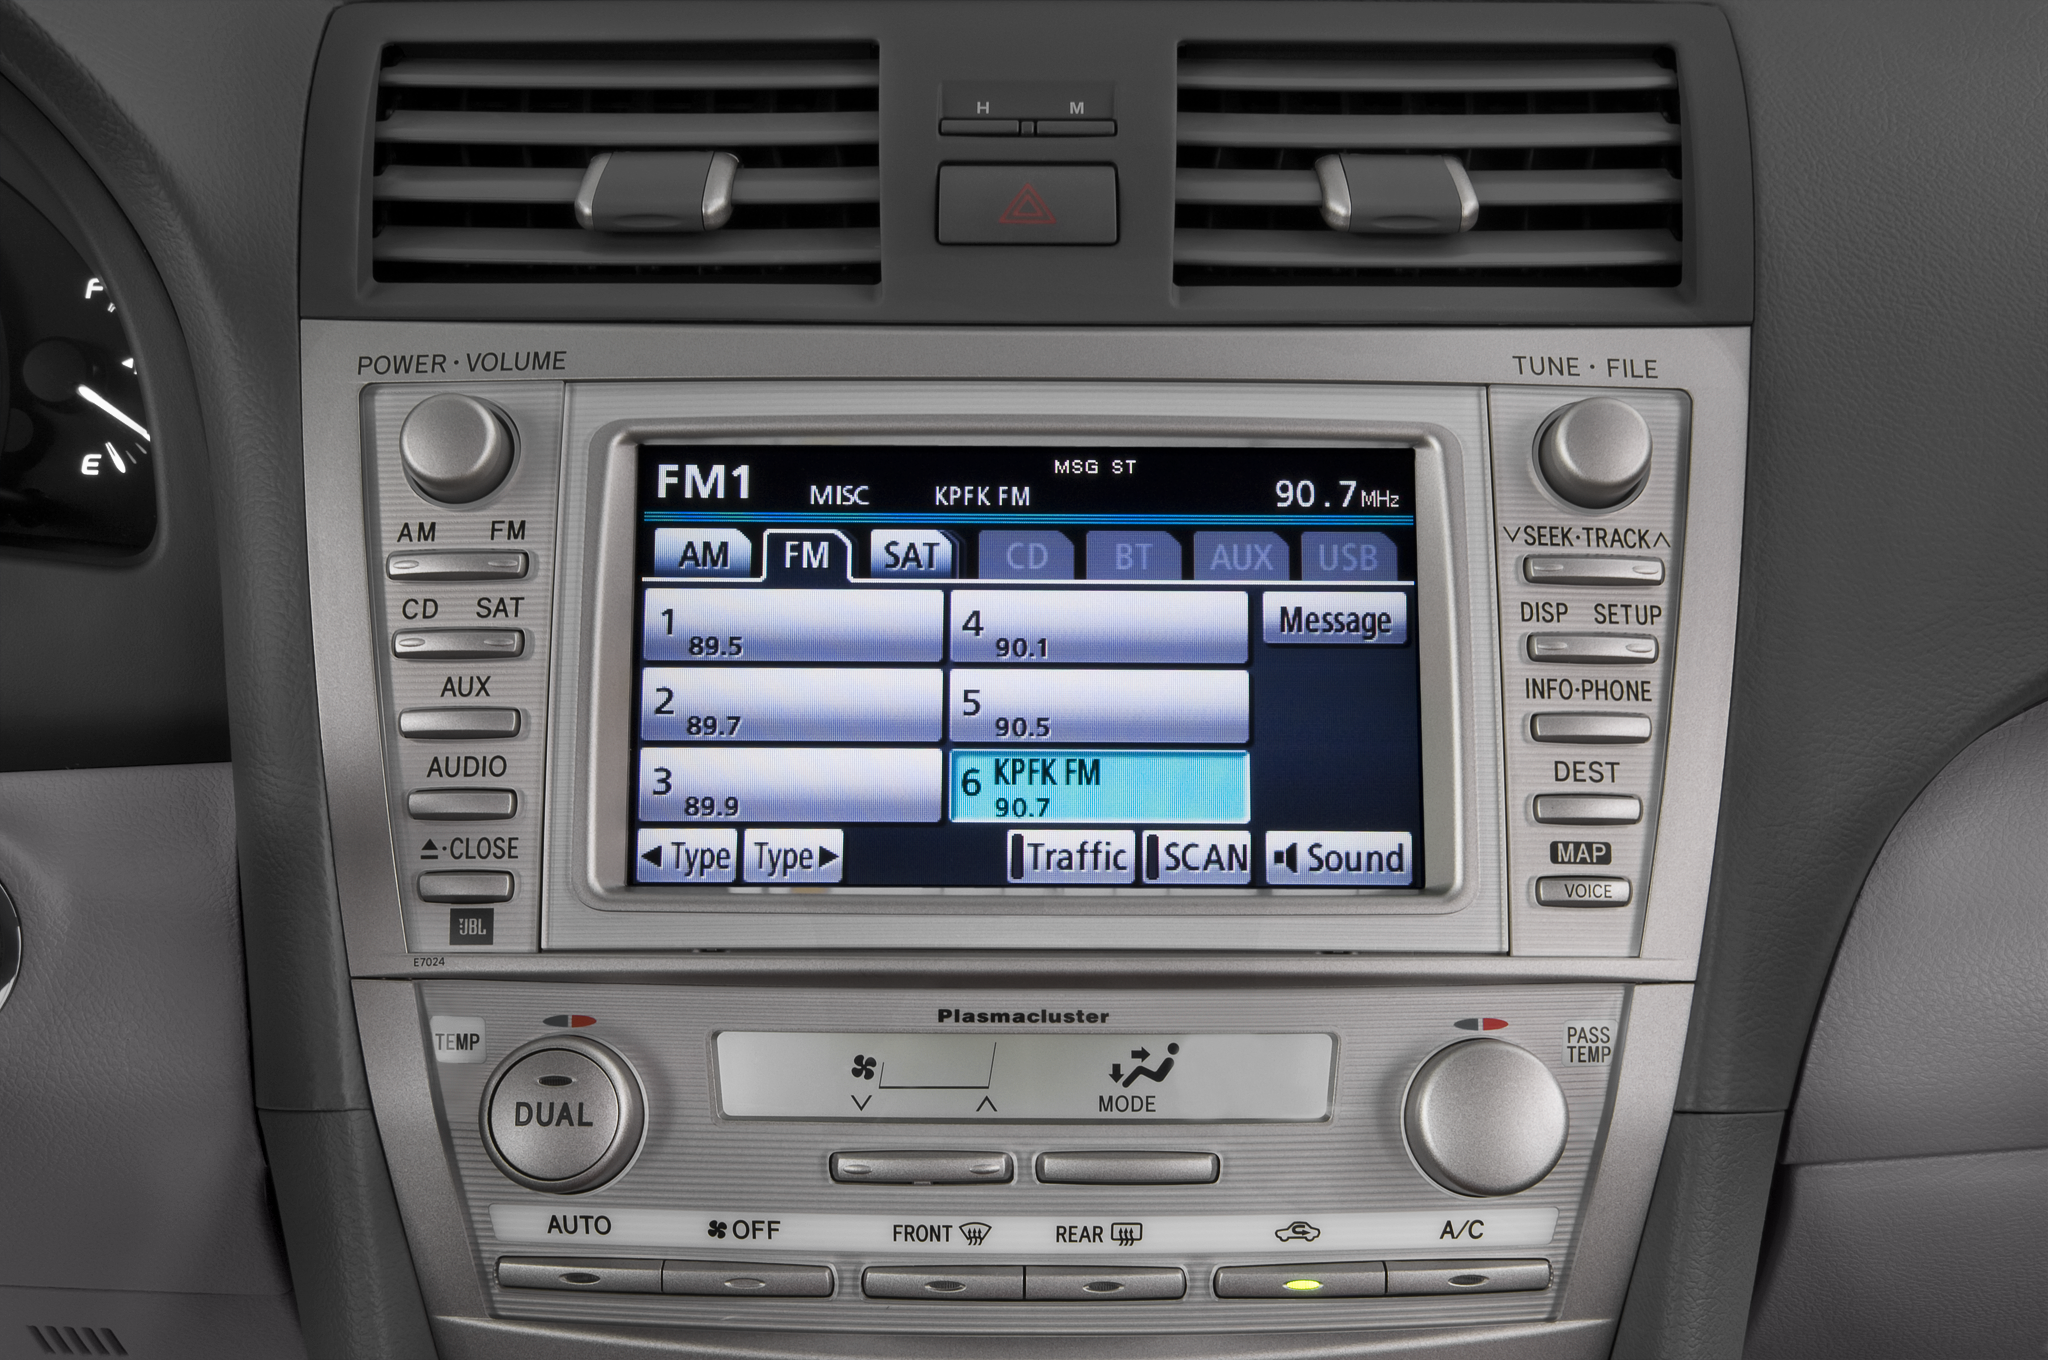 toyota camry 2006 audio system 2006 toyota camry xle v6. Black Bedroom Furniture Sets. Home Design Ideas